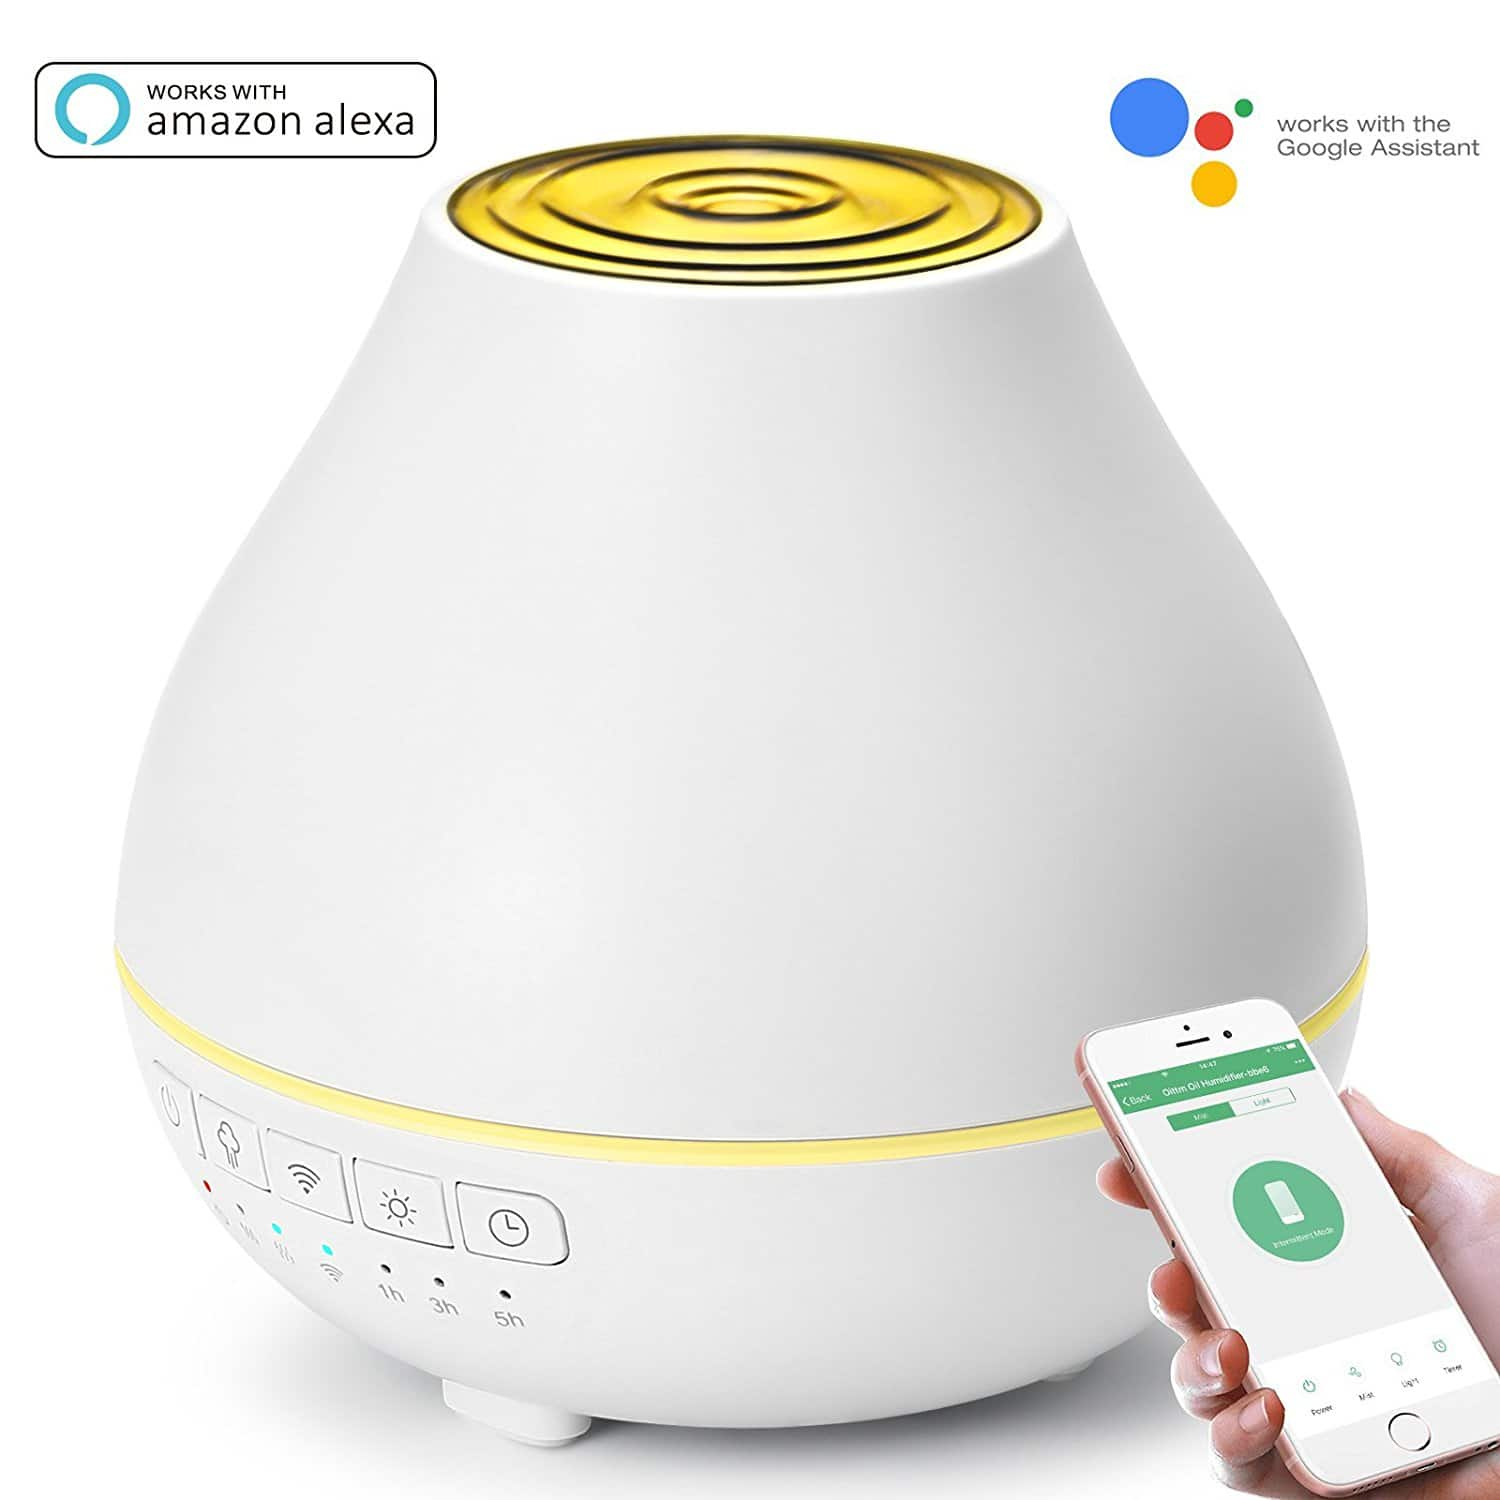 Oittm Smart Aroma Essential Oil Diffuser Wifi Humidifier, Works with Alexa, Google Assistant and Phones App $35.71 + FS